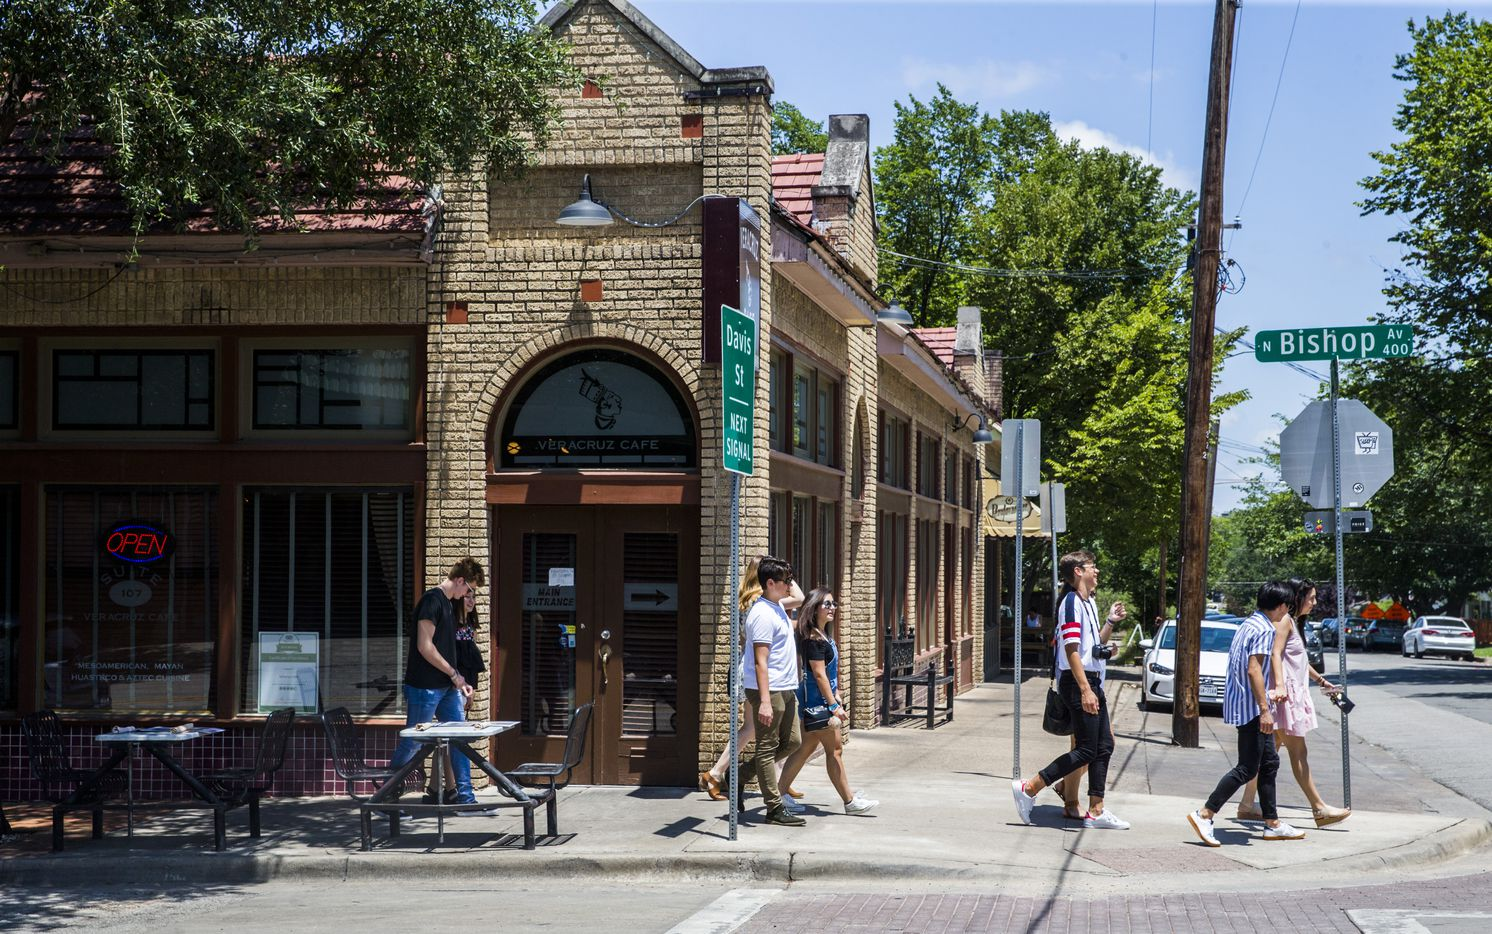 People walked among the shops and restaurants in the Bishop Arts District in June 2017.